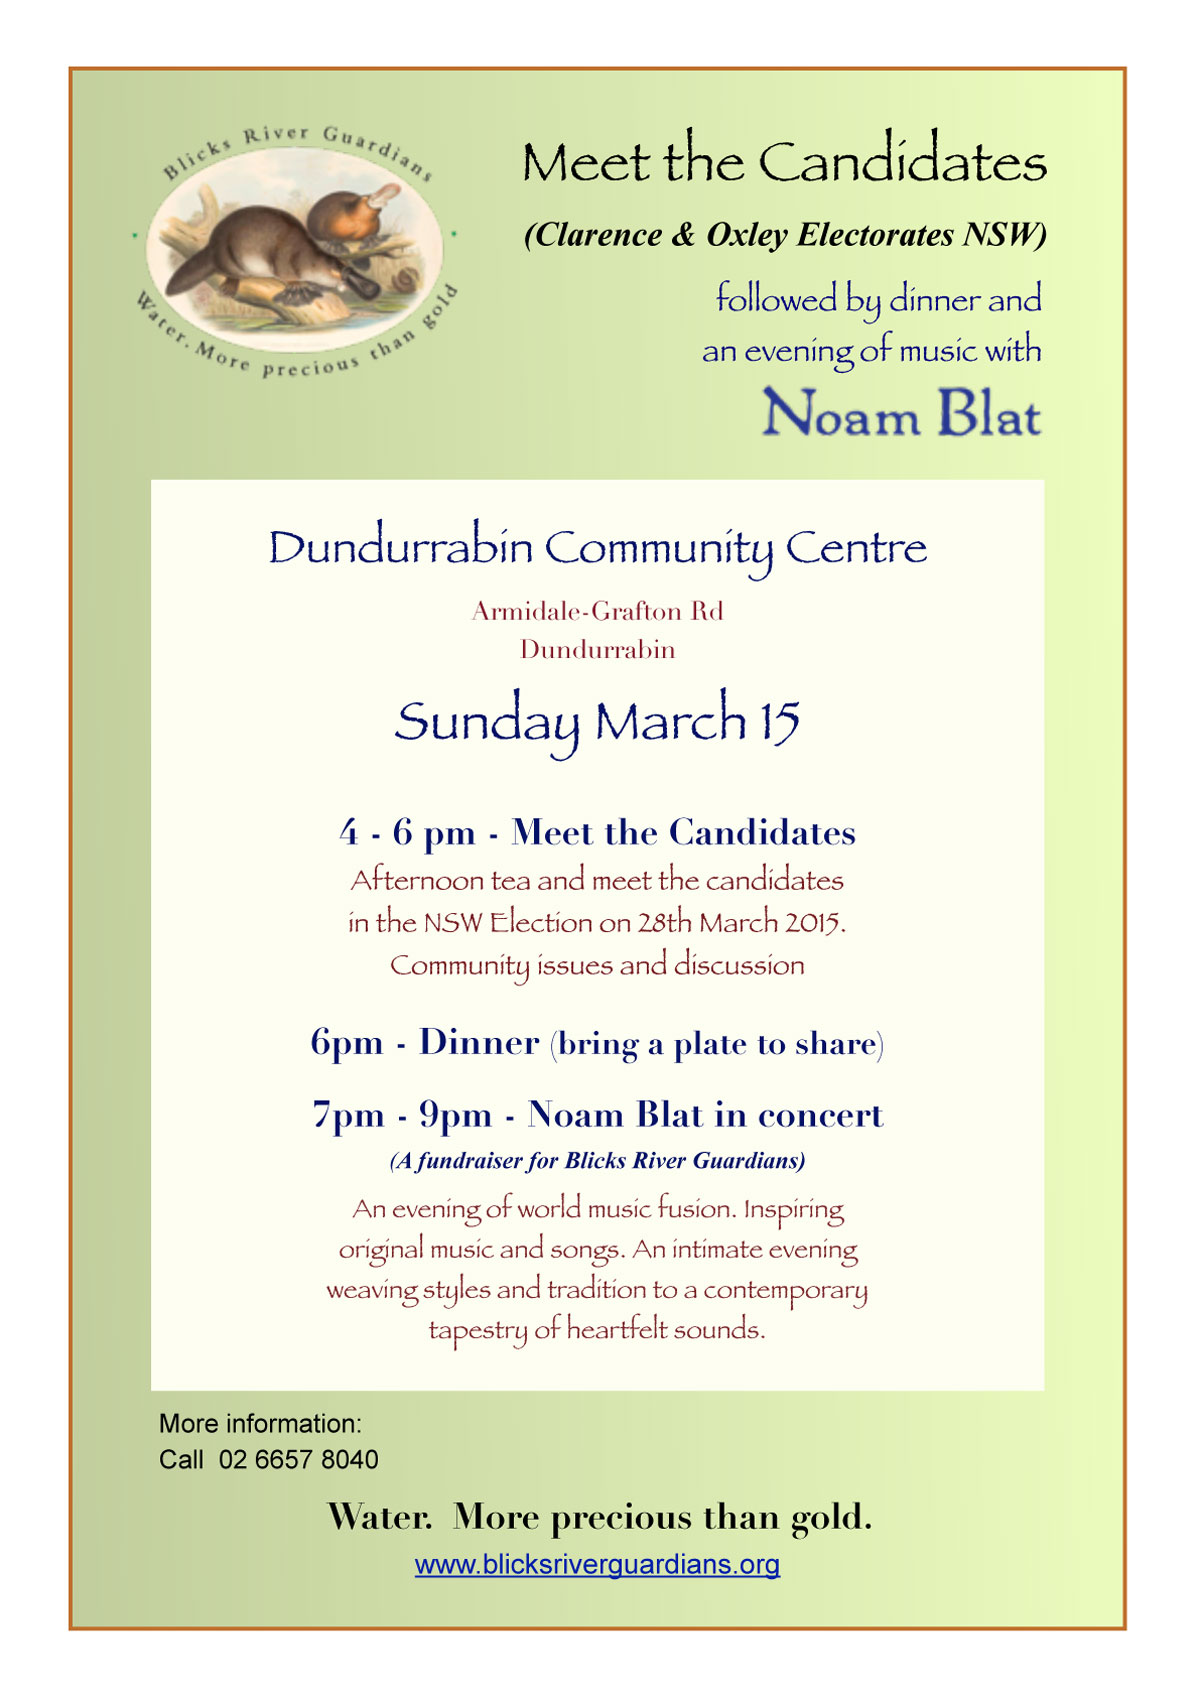 "Meet the Candidates in the NSW State Election at Dundurrabin    The Blicks River Guardians invite you to attend an afternoon tea with NSW election candidates at Dundurrabin Community Centre, 4pm on Sunday 15  th   March. This event, on the beautiful Dorrigo Plateau, provides a great opportunity for you to come and meet the candidates from both the Oxley and Clarence electorates. There will be time for Q & A about the issues that are important to you and following at 6pm will be a community dinner (bring a plate to share) and a fundraiser for the Blicks River Guardians with local musician and songwriter Noam Blat.    Mineral exploration on the Dorrigo Plateau and across the New England fold belt has increased in recent years. The Clarence catchment has a number of active exploration leases for gold, antimony and other minerals, with Anchor Resources prospecting near the Blicks River at Dundurrabin and at Wild Cattle Creek near Dorrigo. Also on the Clarence,  Australia United Mining (Altius) is exploring for gold in the Orara Valley near Coffs Harbour. The Hillgrove mine in the Macleay catchment has plans to reopen with a proposal for a second mine awaiting approval. Other large gold and mineral exploration leases are active at Uralla and Armidale.    The increase in mineral exploration above coastal water catchments across our region concerns local residents.     ""Some of this exploration is being supported with taxpayers money by the state government, despite the list of contamination events that have polluted regional waterways in recent decades,"" said Blicks River Guardians' spokesperson Meredith Stanton, ""Major rainfall events have led to heavy metal contamination polluting the Clarence River at Timbarra in 2001, the Macleay River at Bellbrook in 2009 and at North Parkes a gold and copper mine spill killed birds in 1995. There are many more documented examples across NSW and more than 500 derelict mine sites that companies have walked away from leaving a legacy for NSW taxpayers.""     The Blicks River Guardians consider mining to be an inappropriate land use on the Dorrigo Plateau and aim to protect our high rainfall area from future mining development. Local communities rely heavily on tourism and the local agricultural industry. The risks that an open cut mine would bring to our catchments are not worth the few jobs that might be available to local people if mining development were to be approved.      BRG will be asking the NSW election candidates where they stand on mining in our water catchments.     To ask the candidates about important local issues come along to the public event at:    Dundurrabin Community Centre,  Armidale-Grafton Road,  Dundurrabin.    Date:  Sunday 15th March 2015    4 - 6pm—Meet the Candidates. Afternoon tea provided    6 - 7pm—Dinner. Bring a plate to share.    7 - 9pm—Music. Noam Blat      For event information call  02 6657 8040."